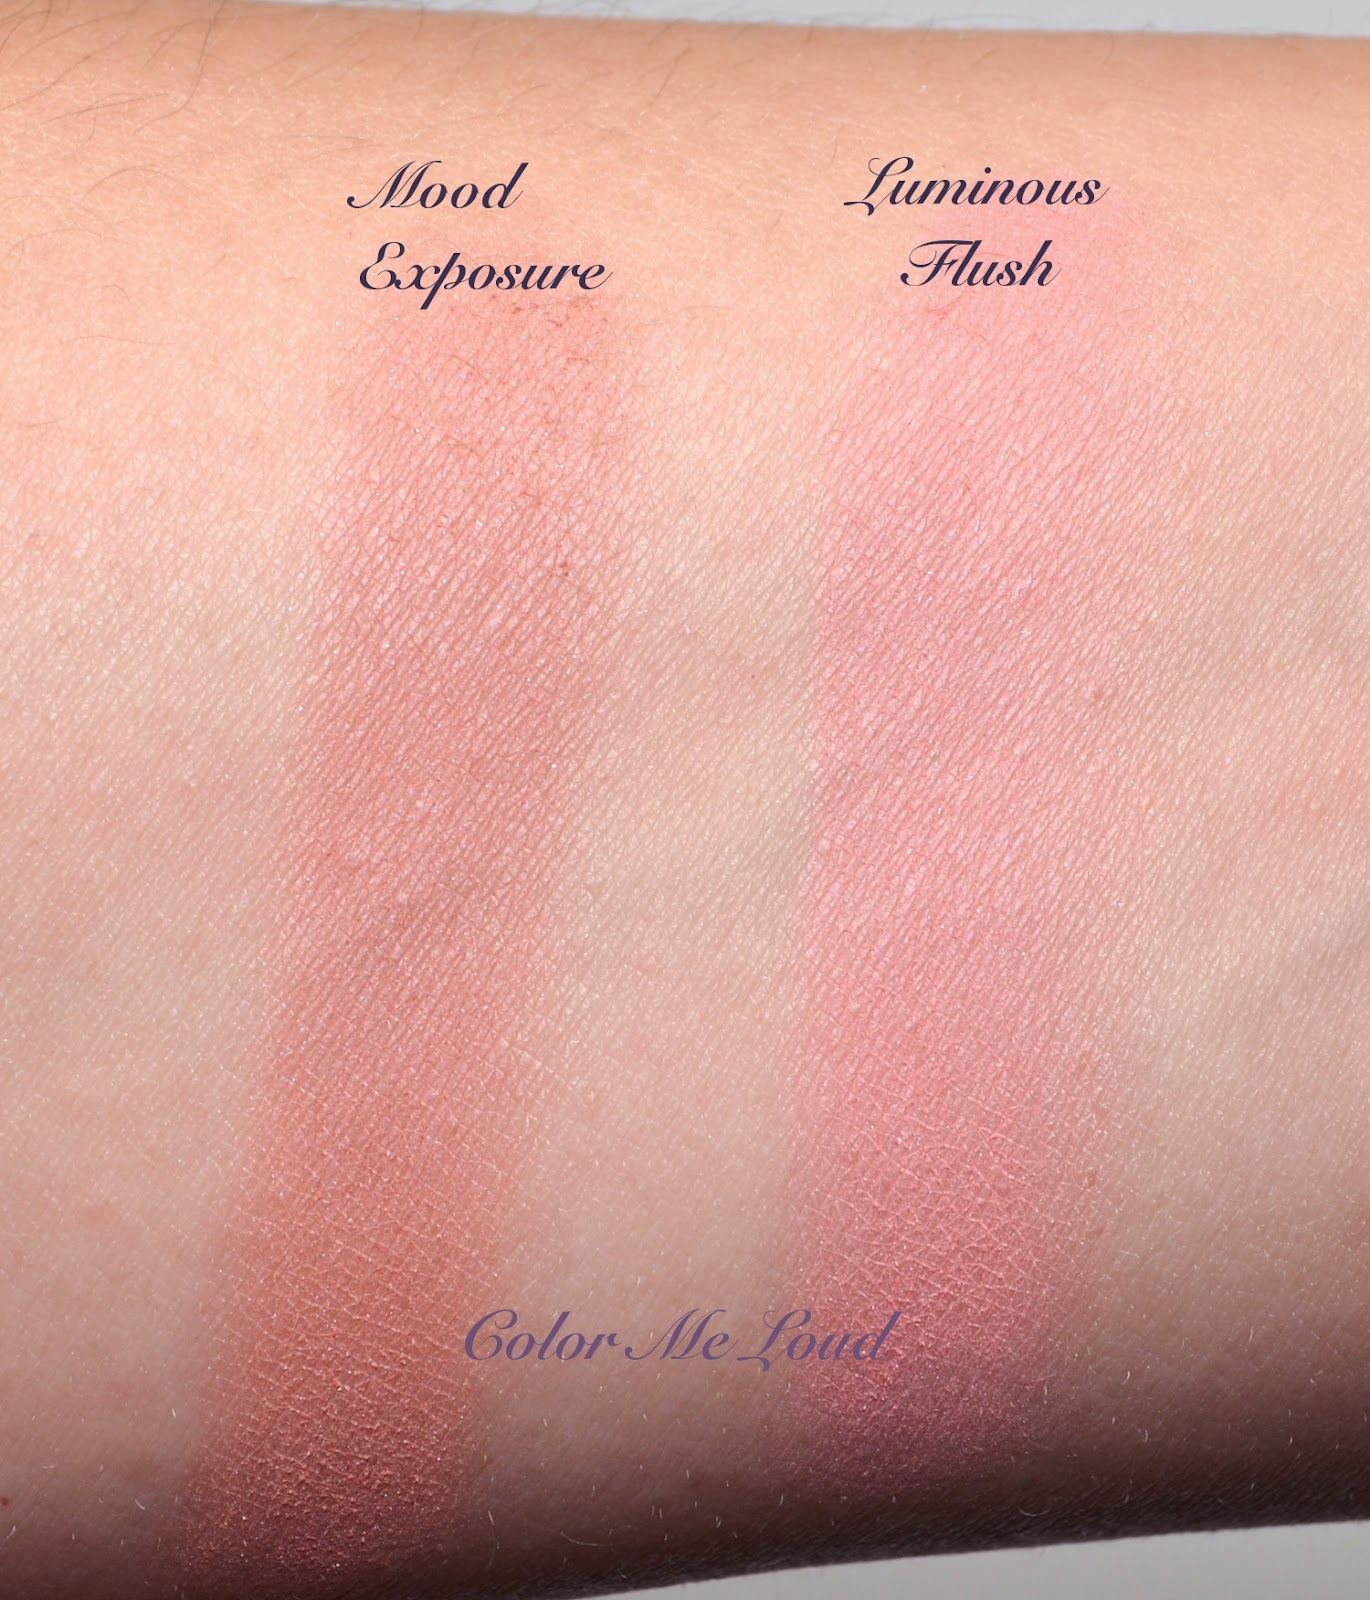 Exceptional Swatches: Hourglass Ambient Lighting Blush Luminous Flush U0026 Mood Exposure Nice Ideas